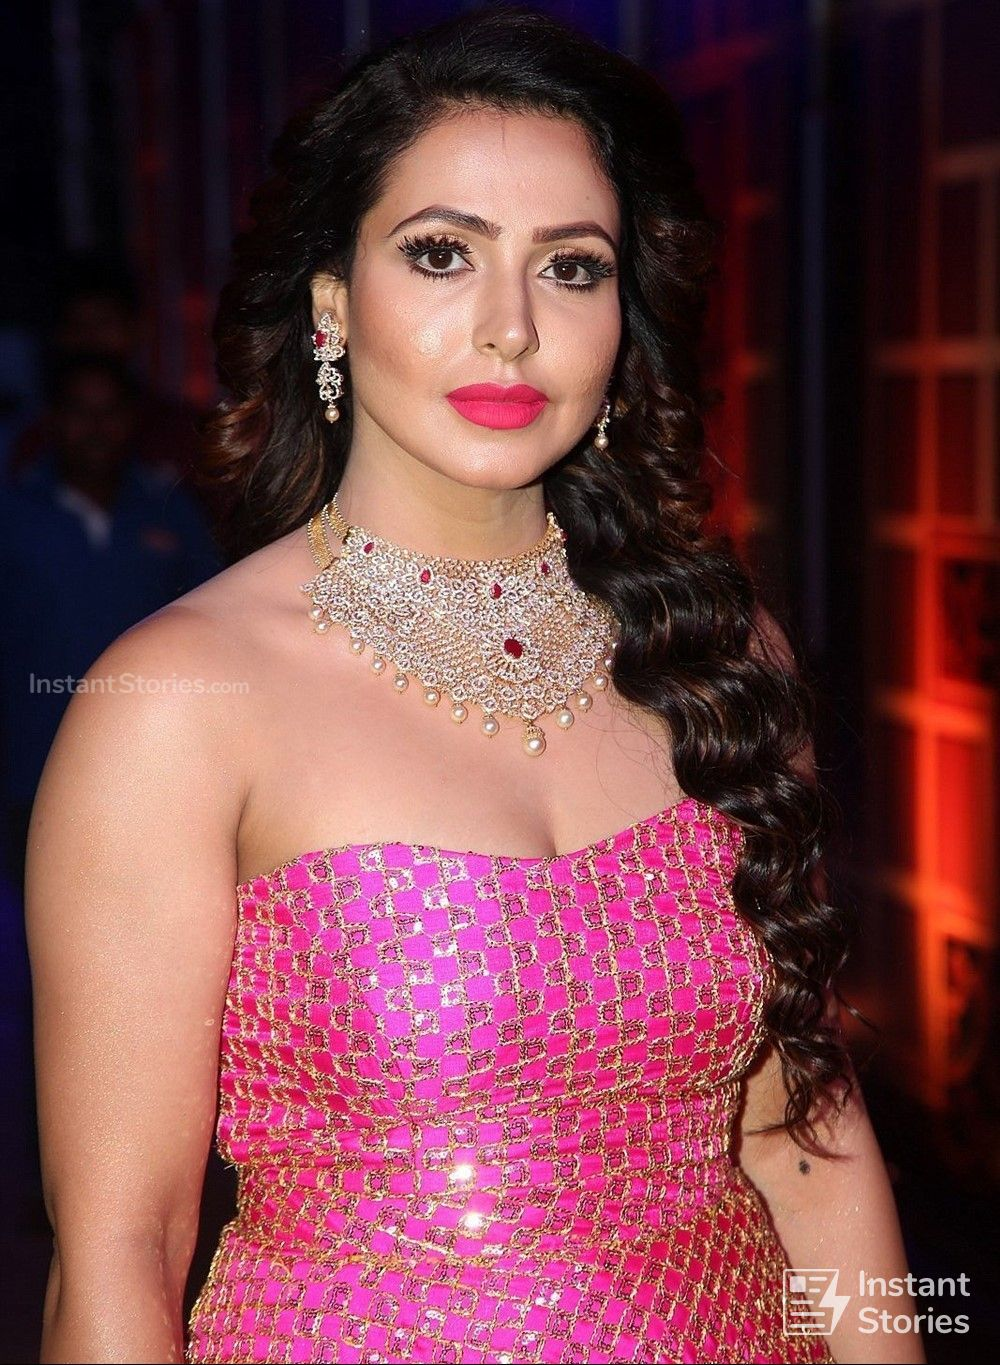 Actress Nandini Rai Photos at Zee Telugu Kutumbam Awards Event (16238) - Nandini Rai